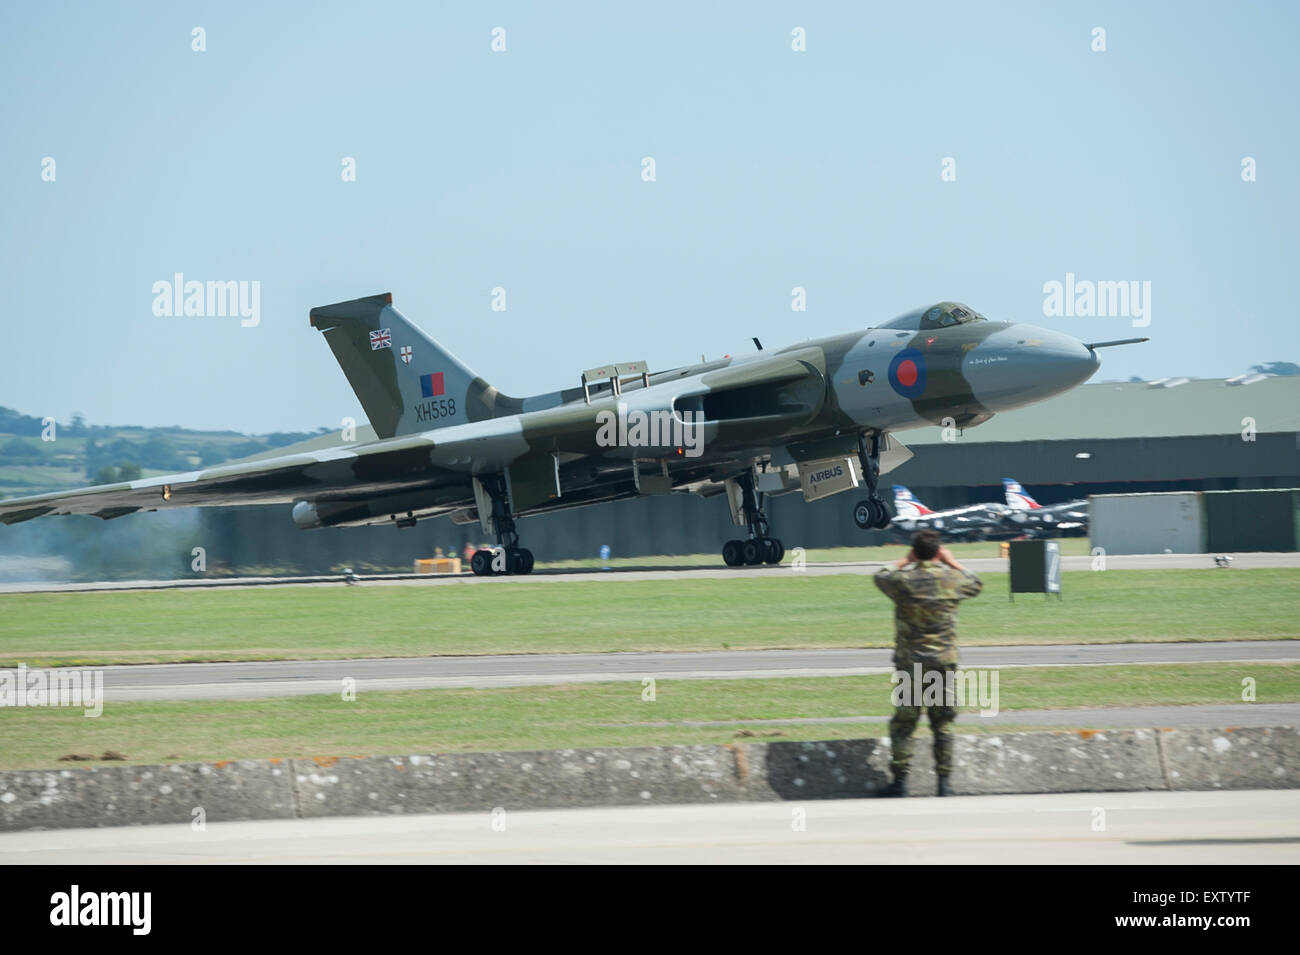 Avro Vulcan XH558 The Spirit Of Great Britain jet powered delta winged strategic nuclear bomber aircraft - Stock Image